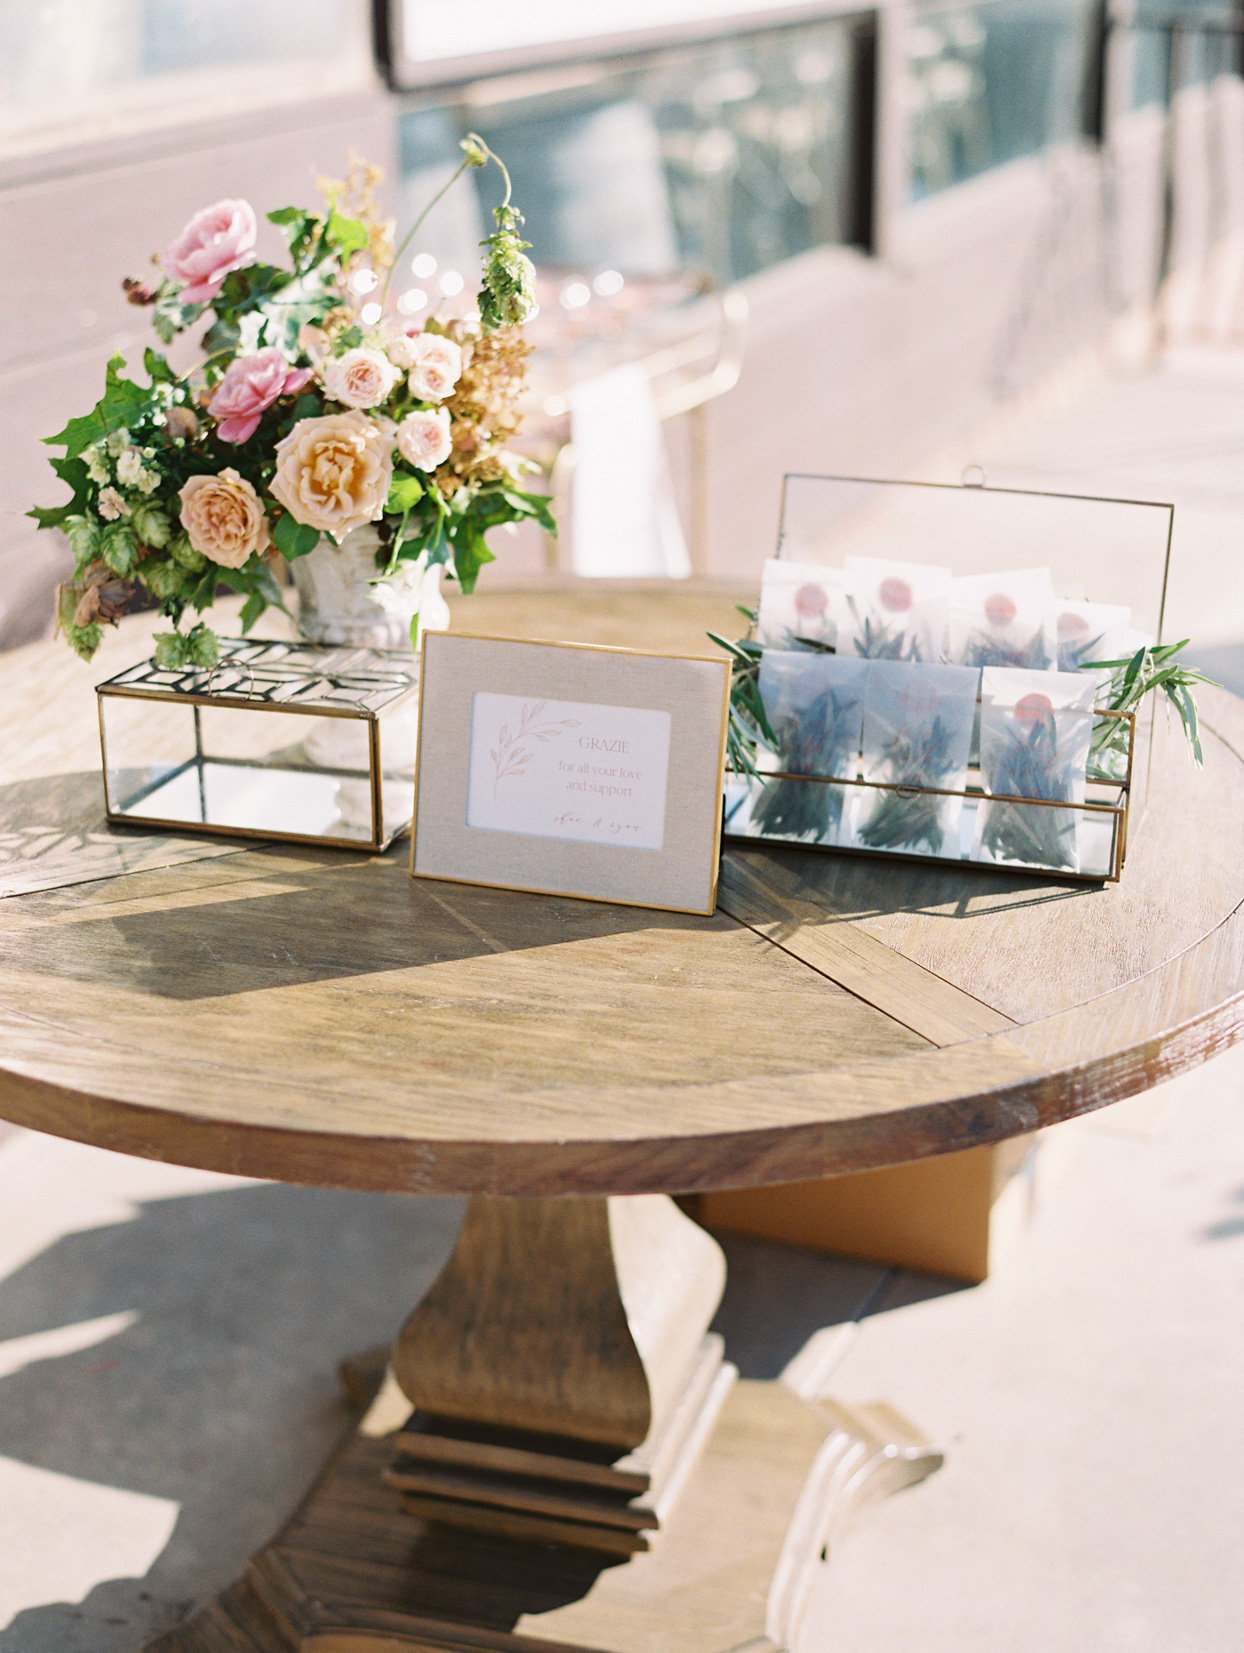 round wooden table with box of wedding favors